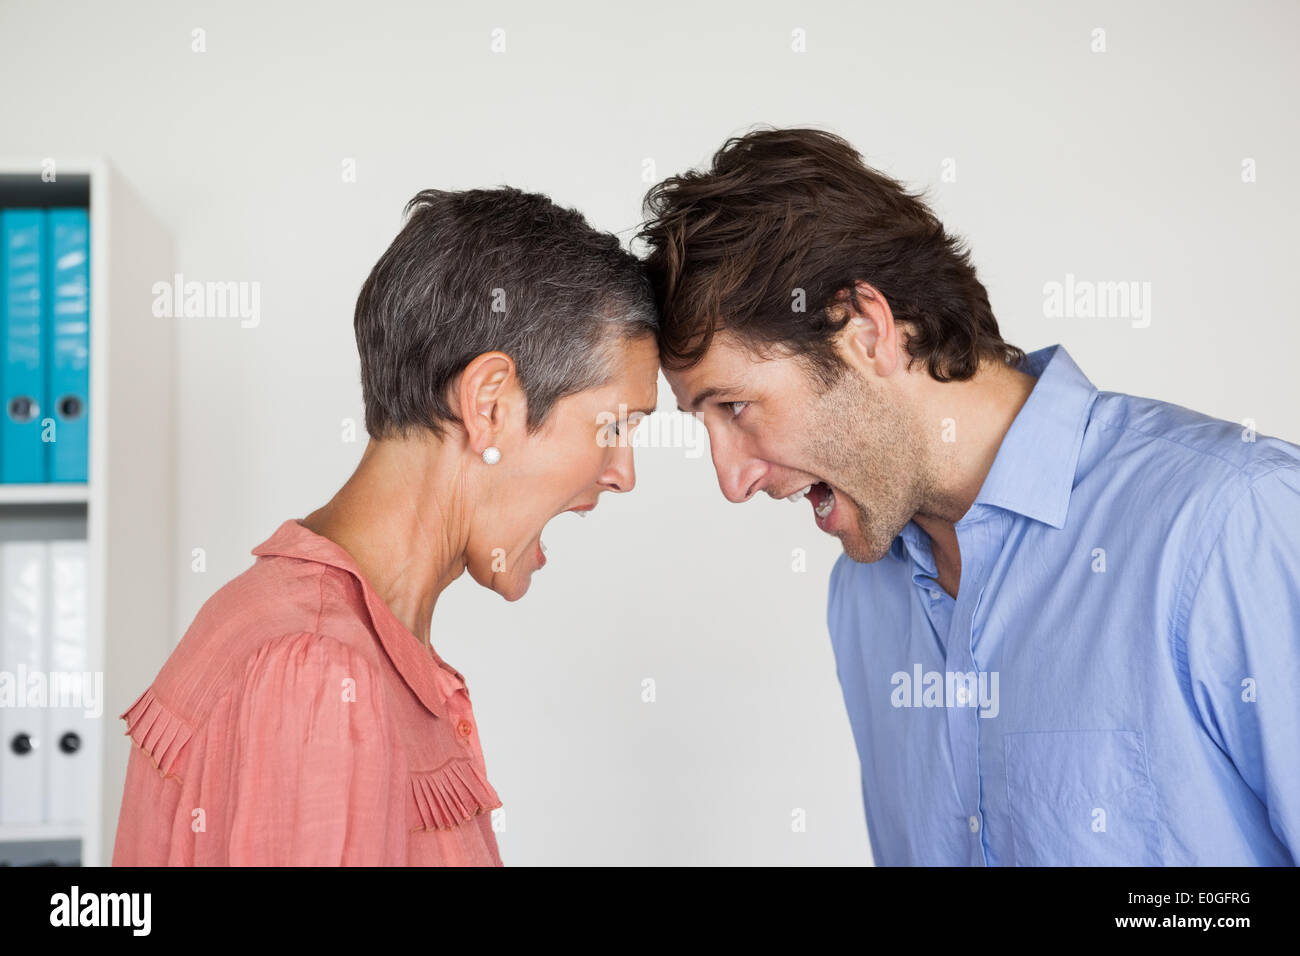 Angry business people shouting at each other - Stock Image